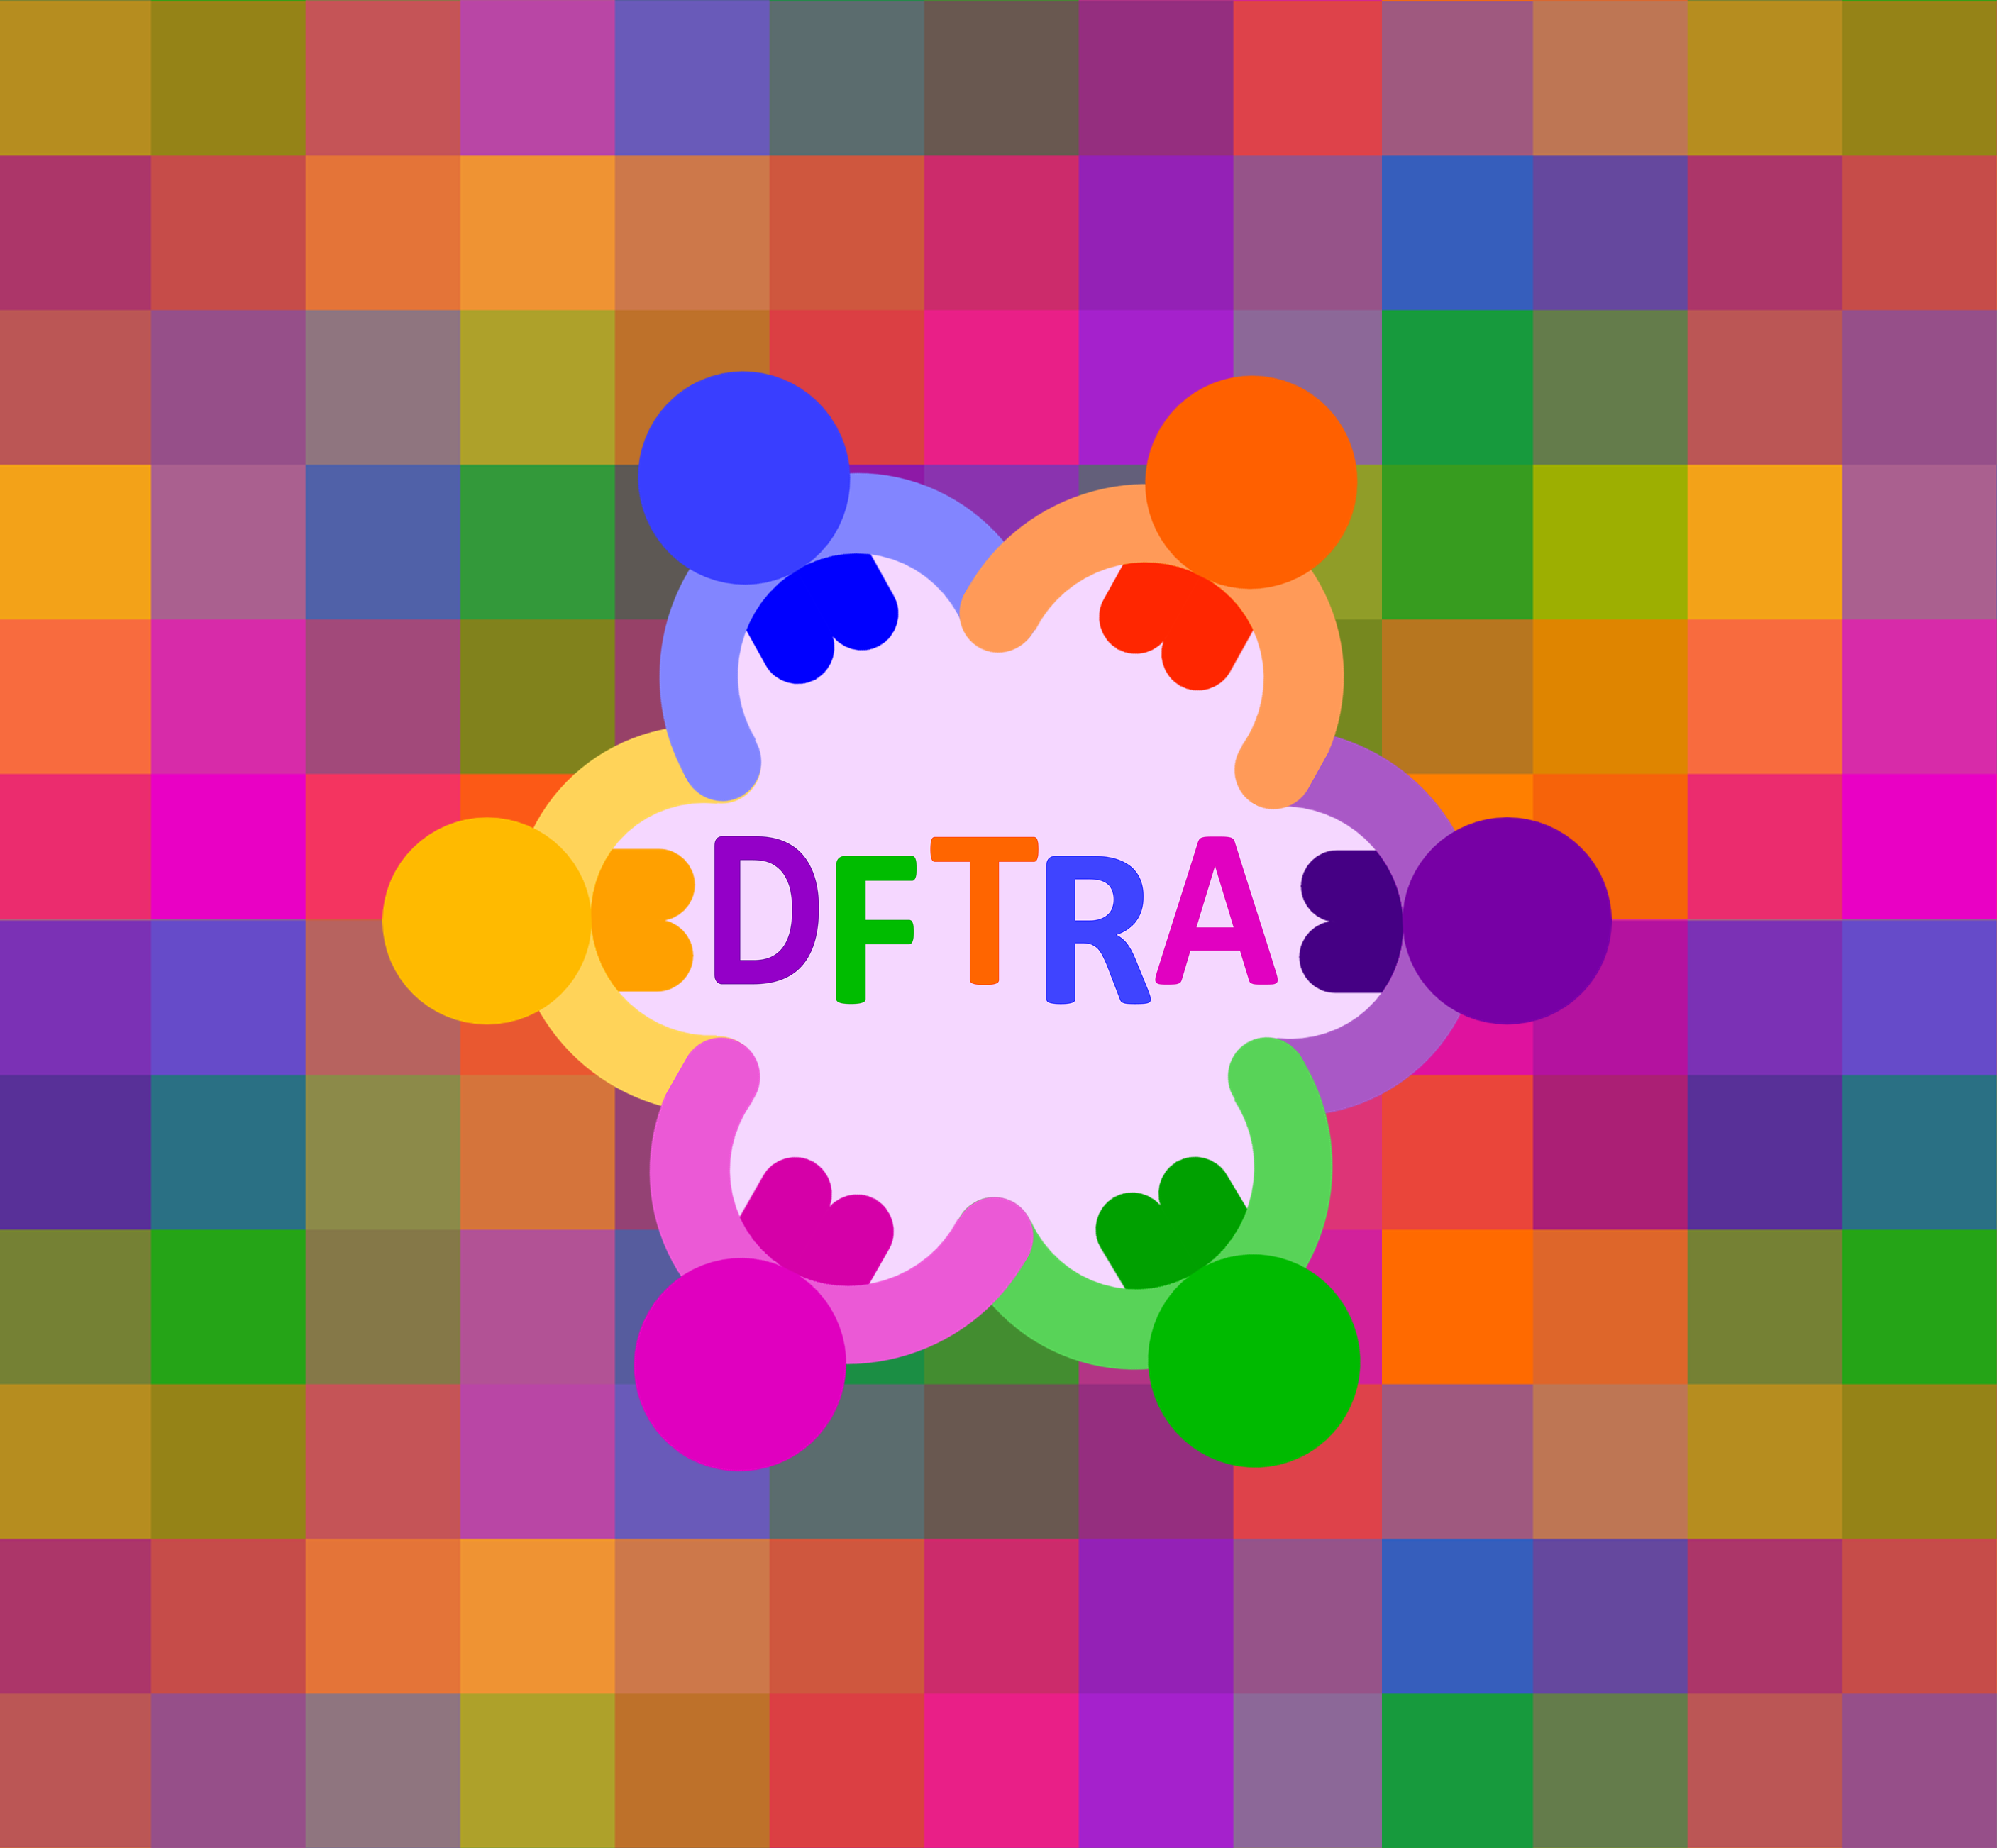 DFTRA - Dudley Federation of Tenants and Residents logo